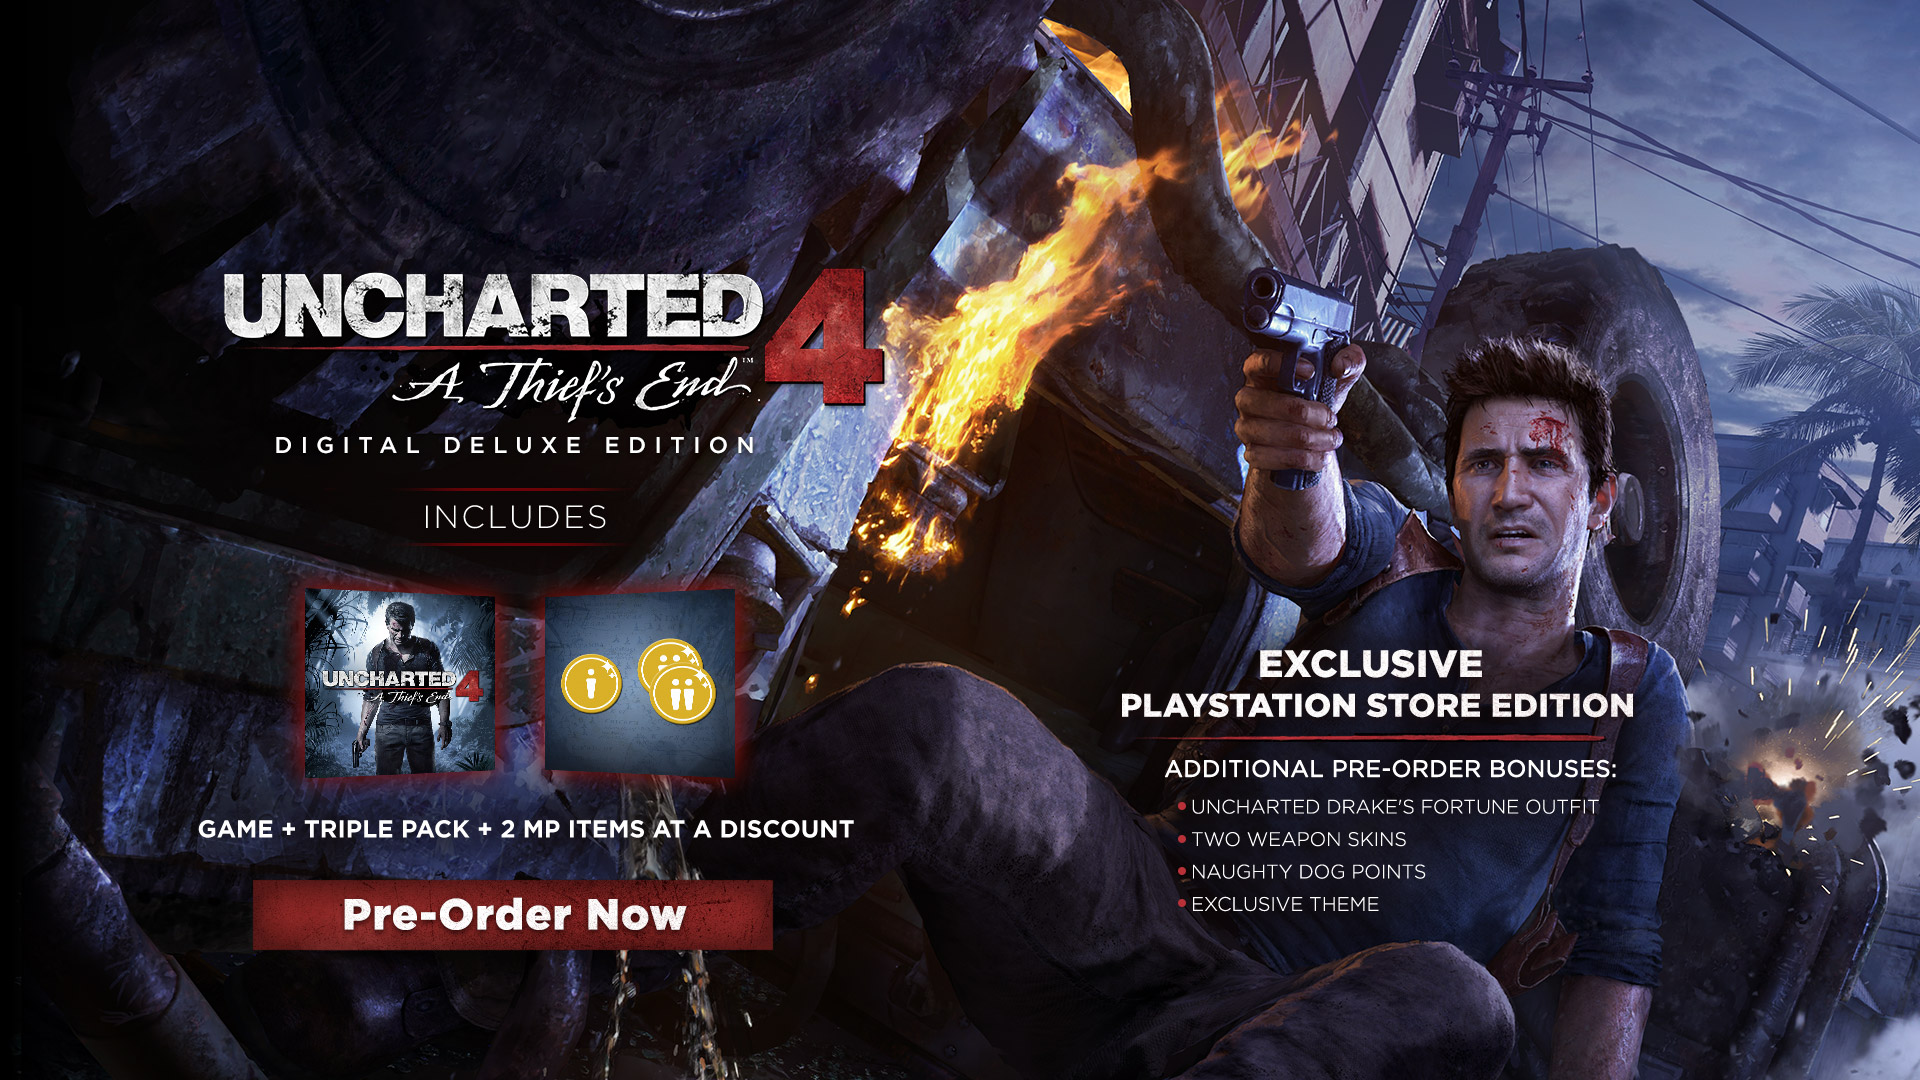 uncharted-4-a-thiefs-end-digital-deluxe-edition